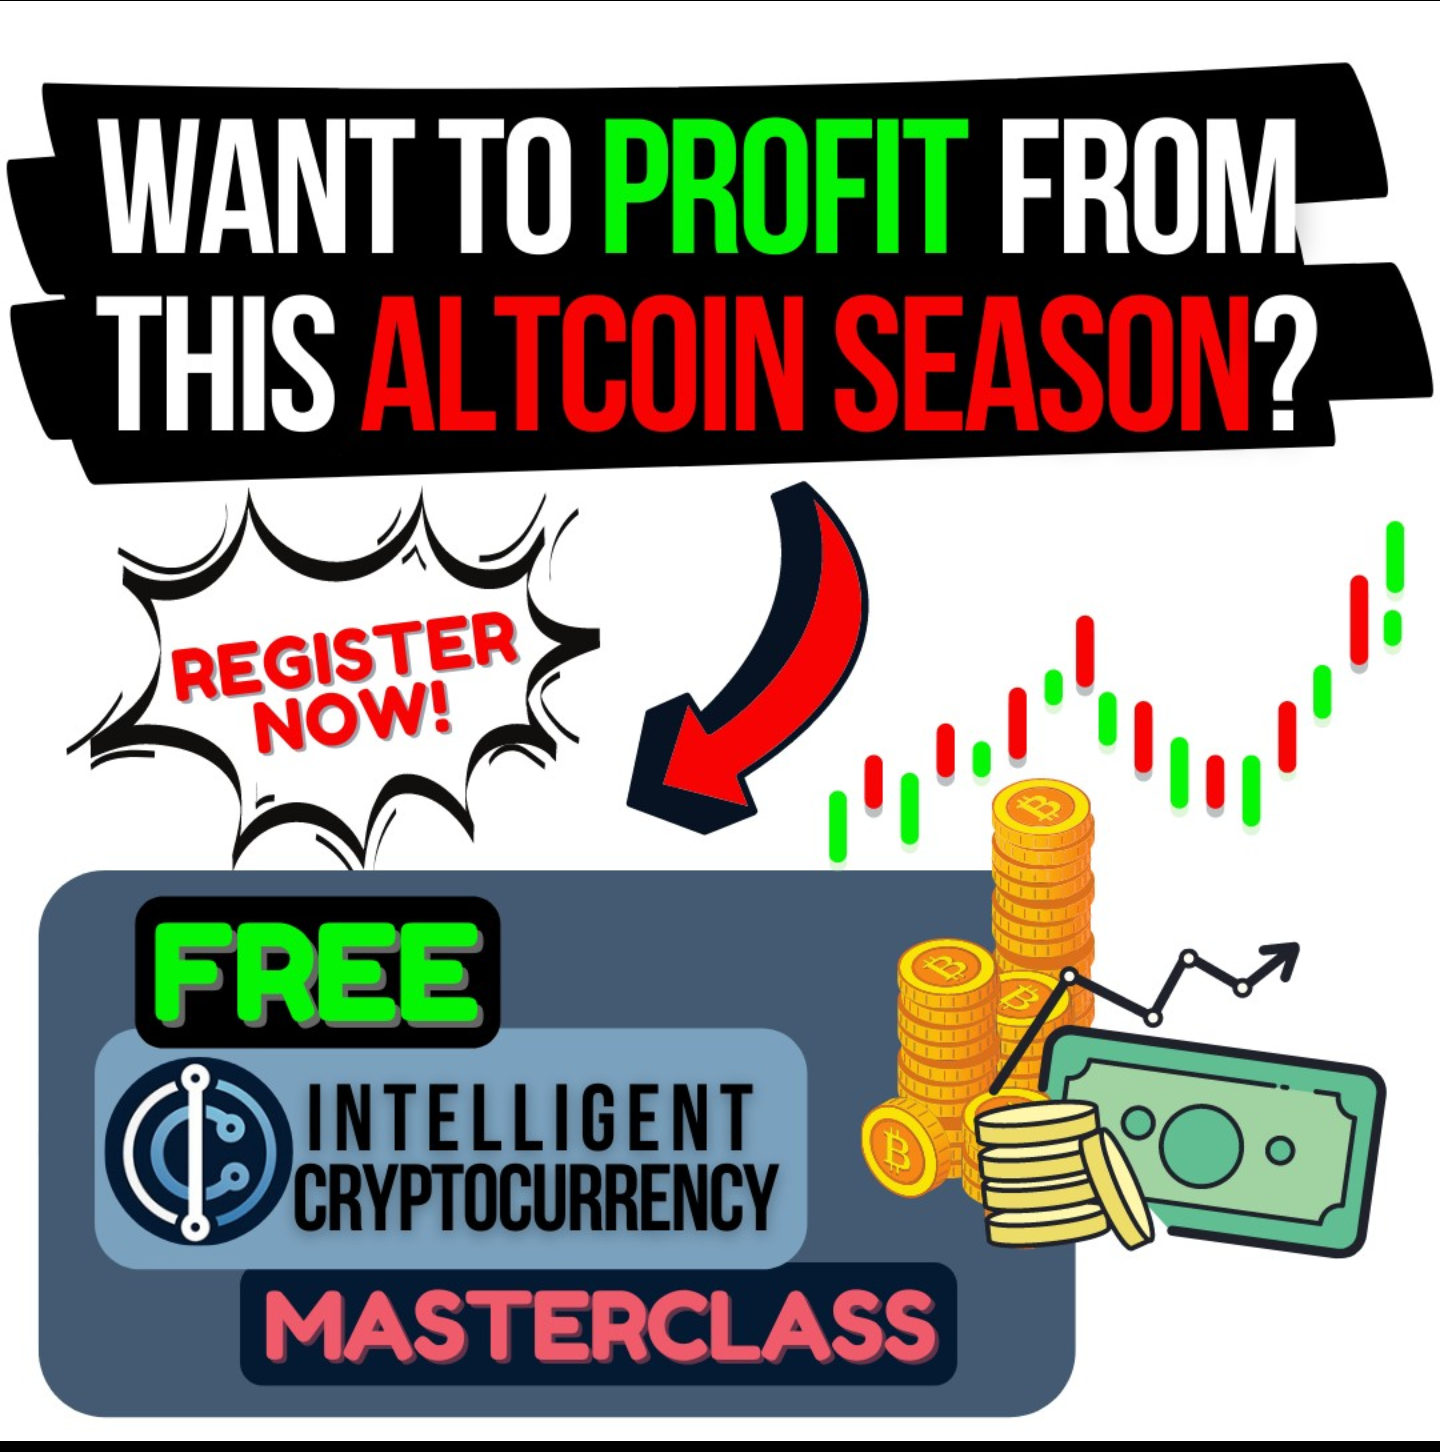 EARN as much as 271,244 dollars with free CRYPTOCURRENCY MASTERCLASS